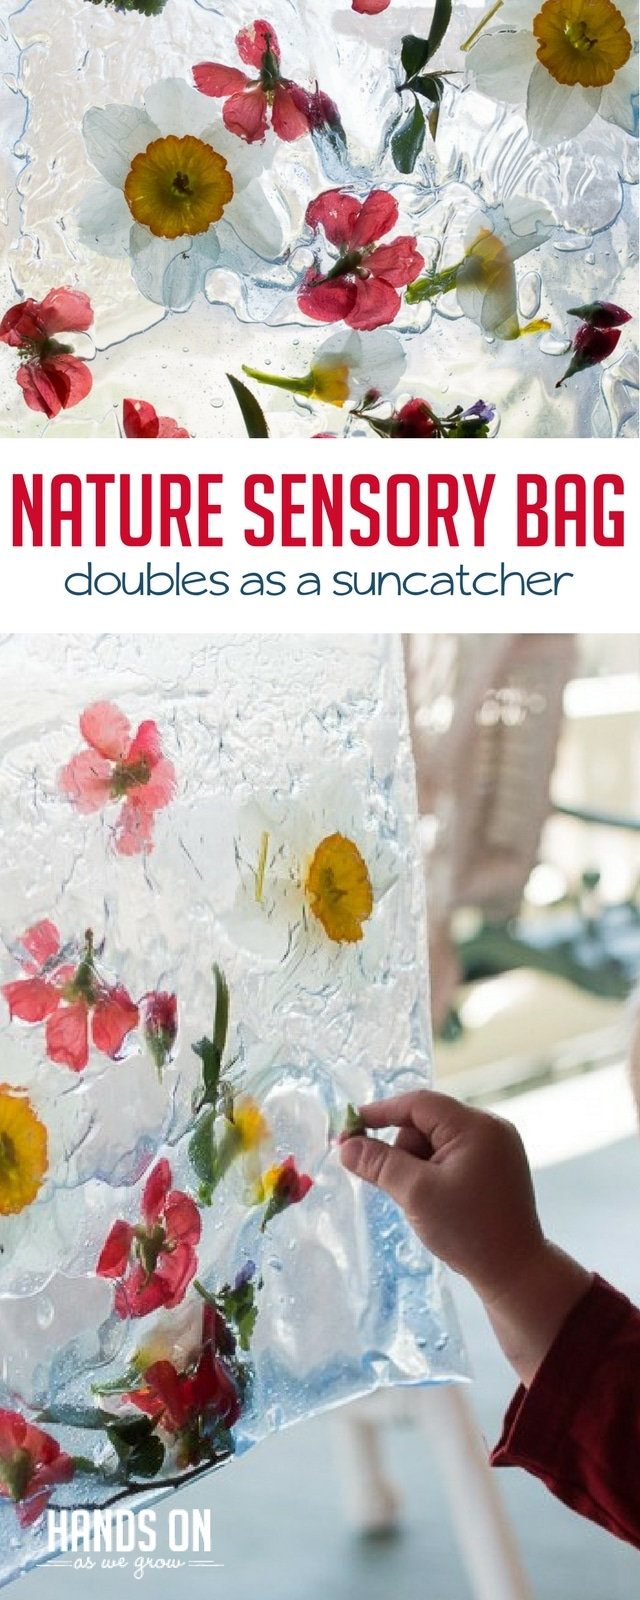 Build a combo sensory bag and suncatcher that brings Spring inside with a Nature Sensory Bag!